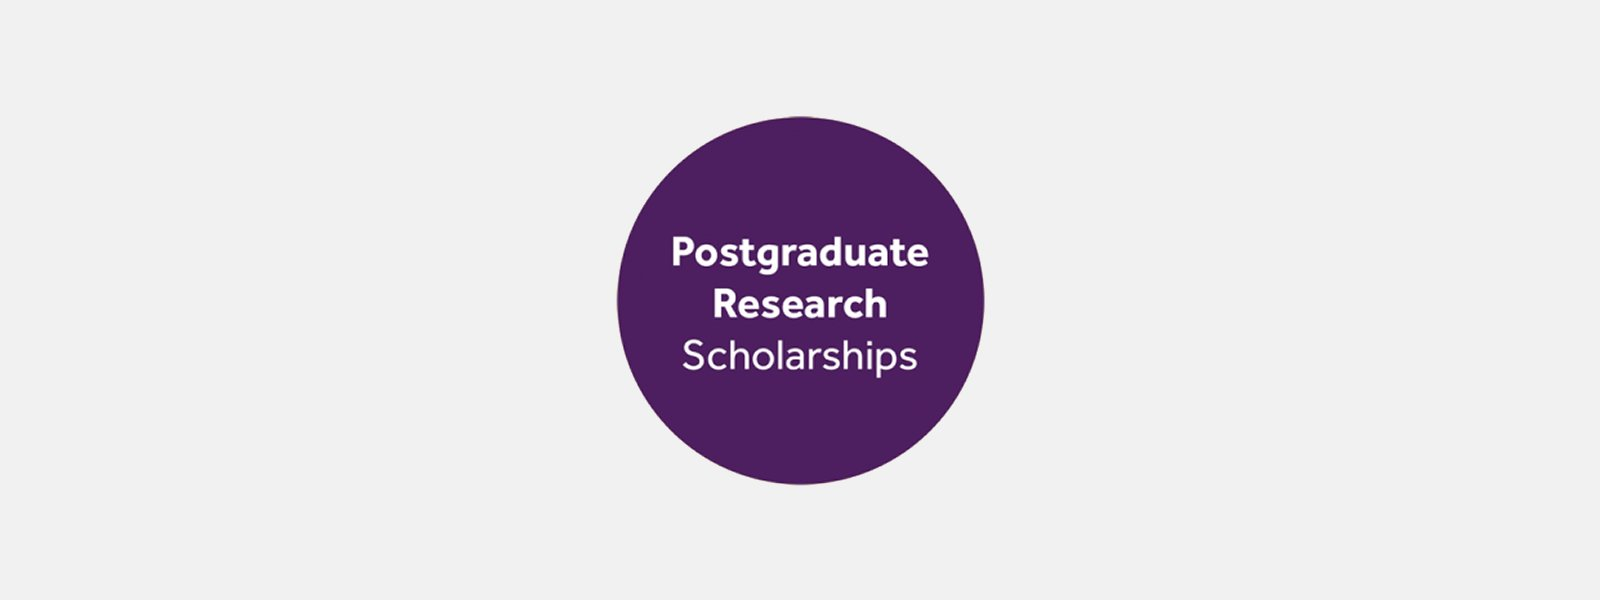 Postgraduate research scholarships for 2017